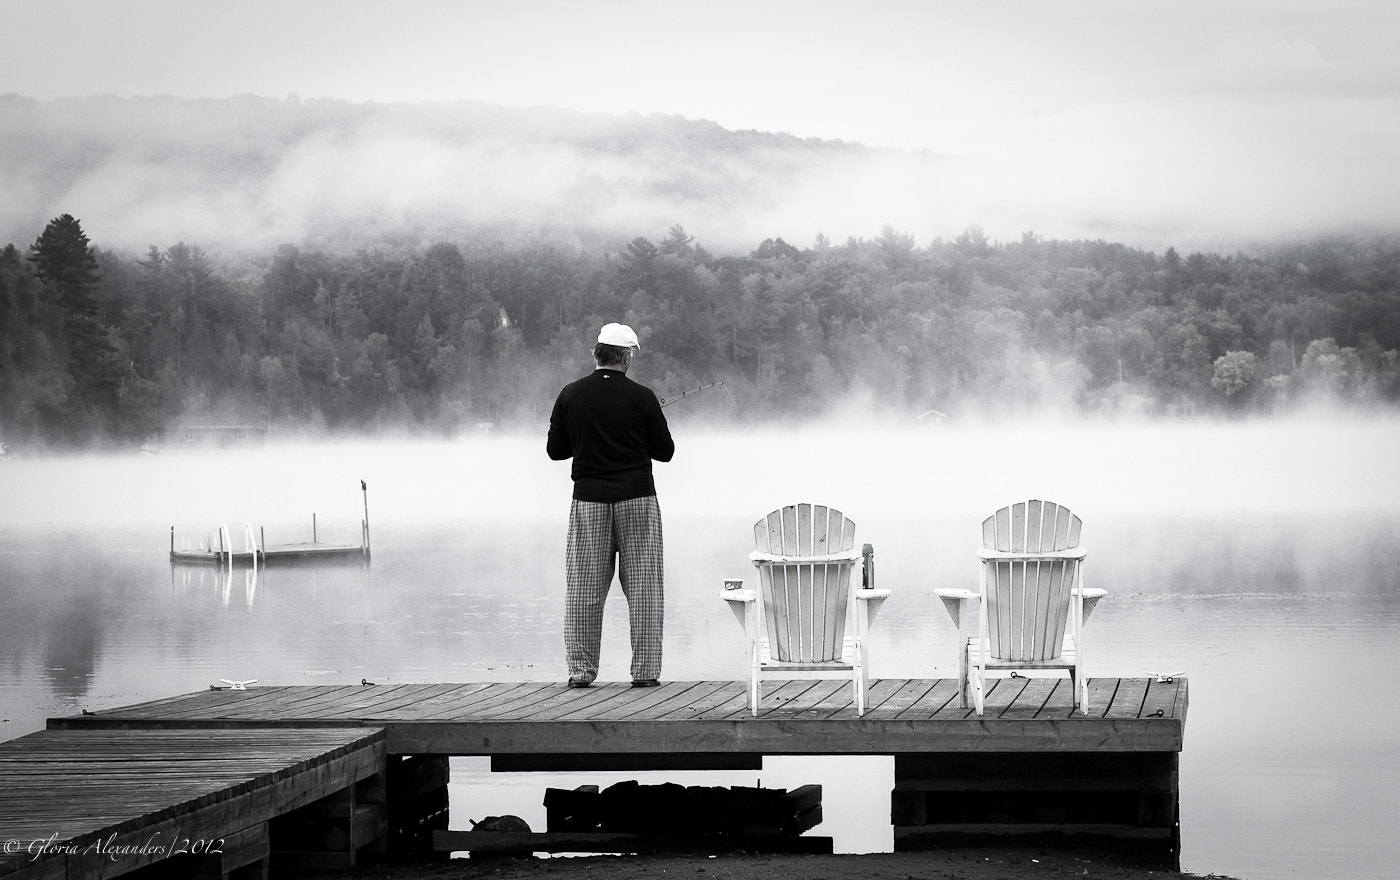 Photograph Fishing in the mist by Gloria Alexanders on 500px